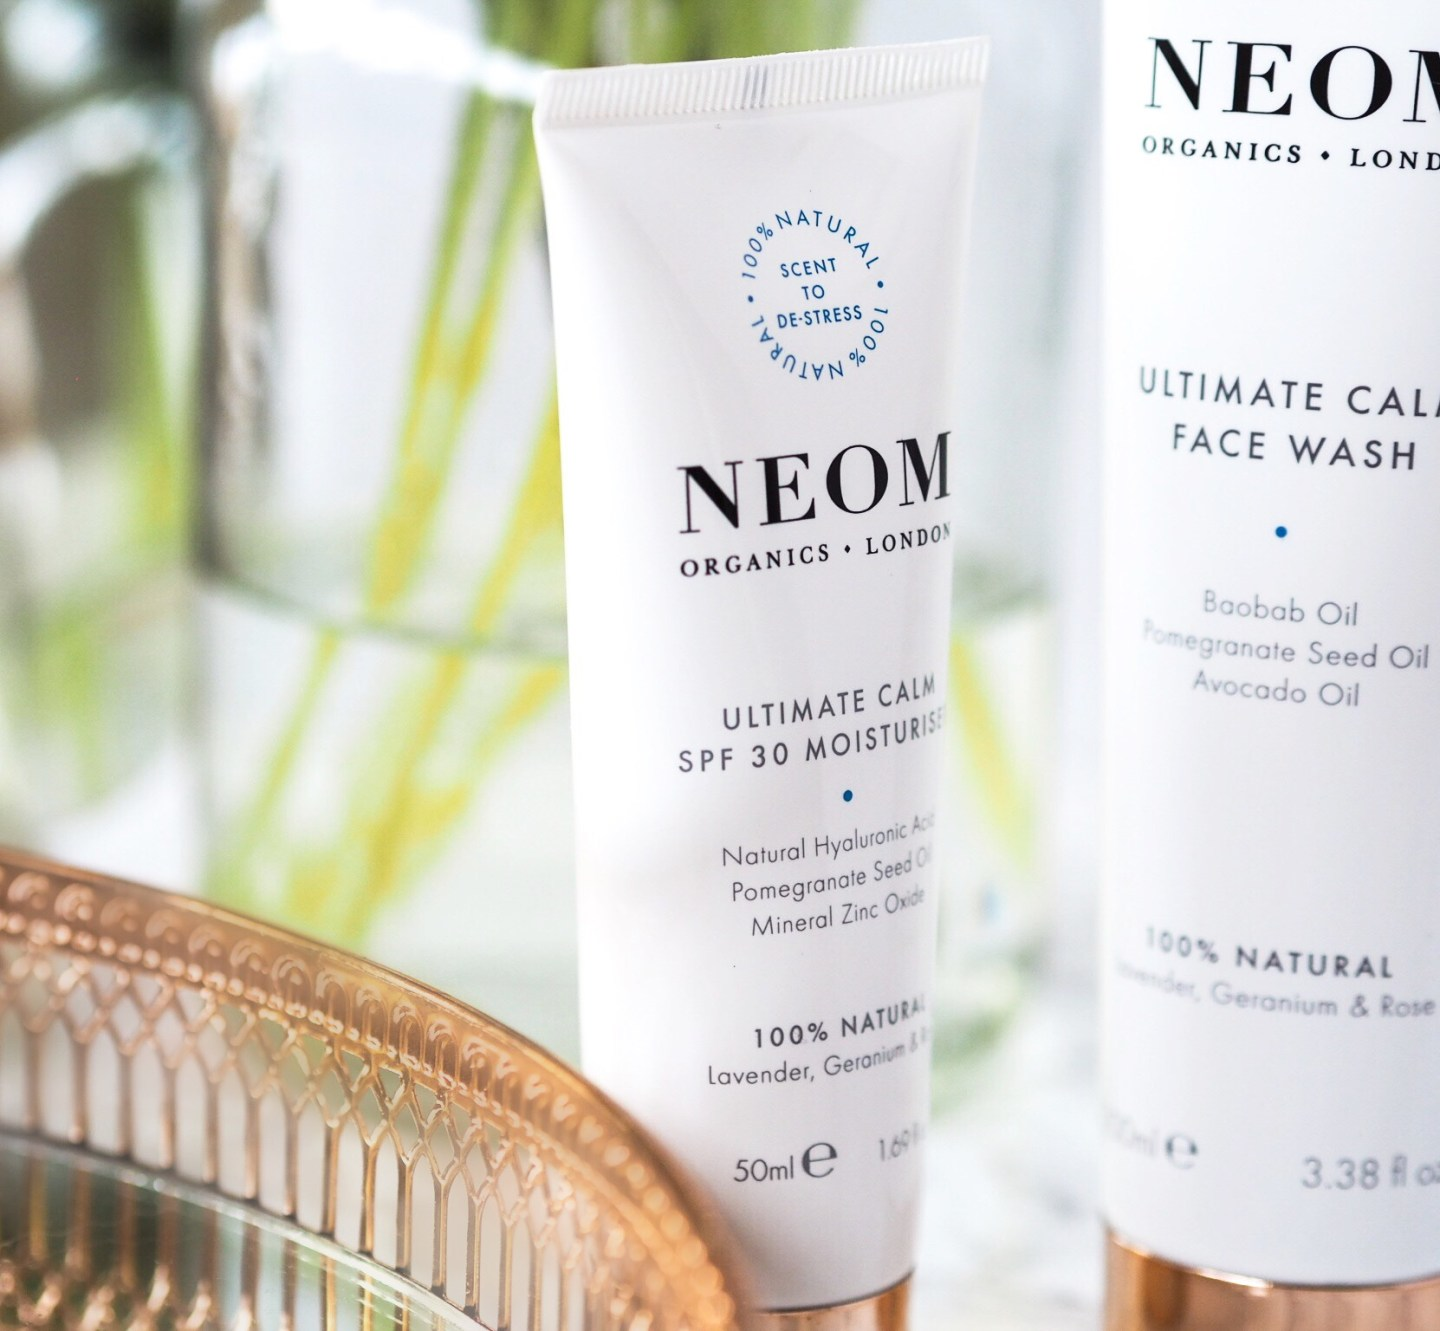 NEOM Luxury Organics new Ultimate Calm skincare system The Beauty Spyglass